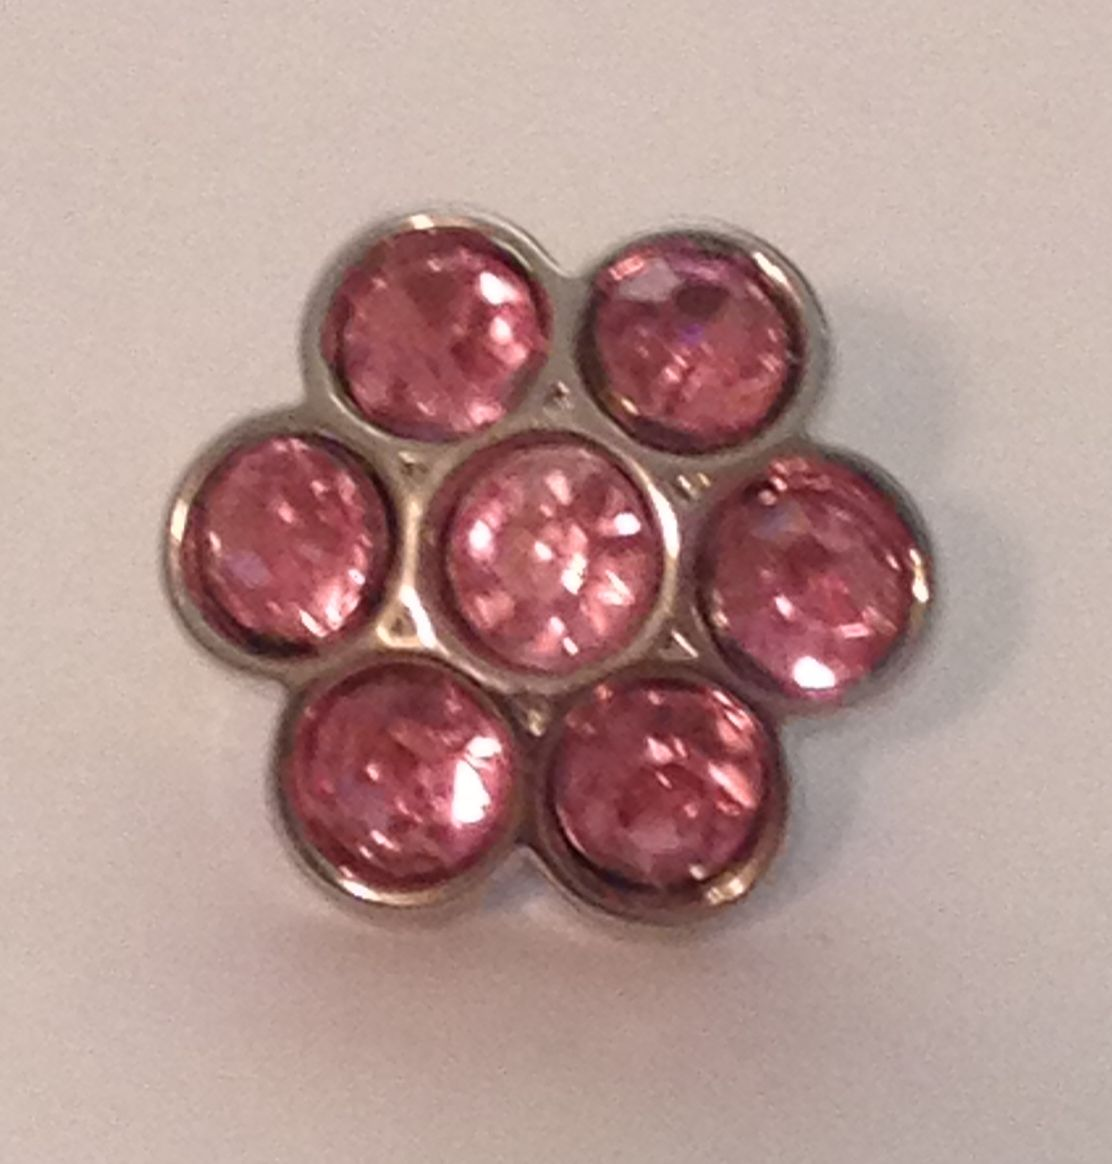 Mini Flower Blingy Button - Pink - 1 piece